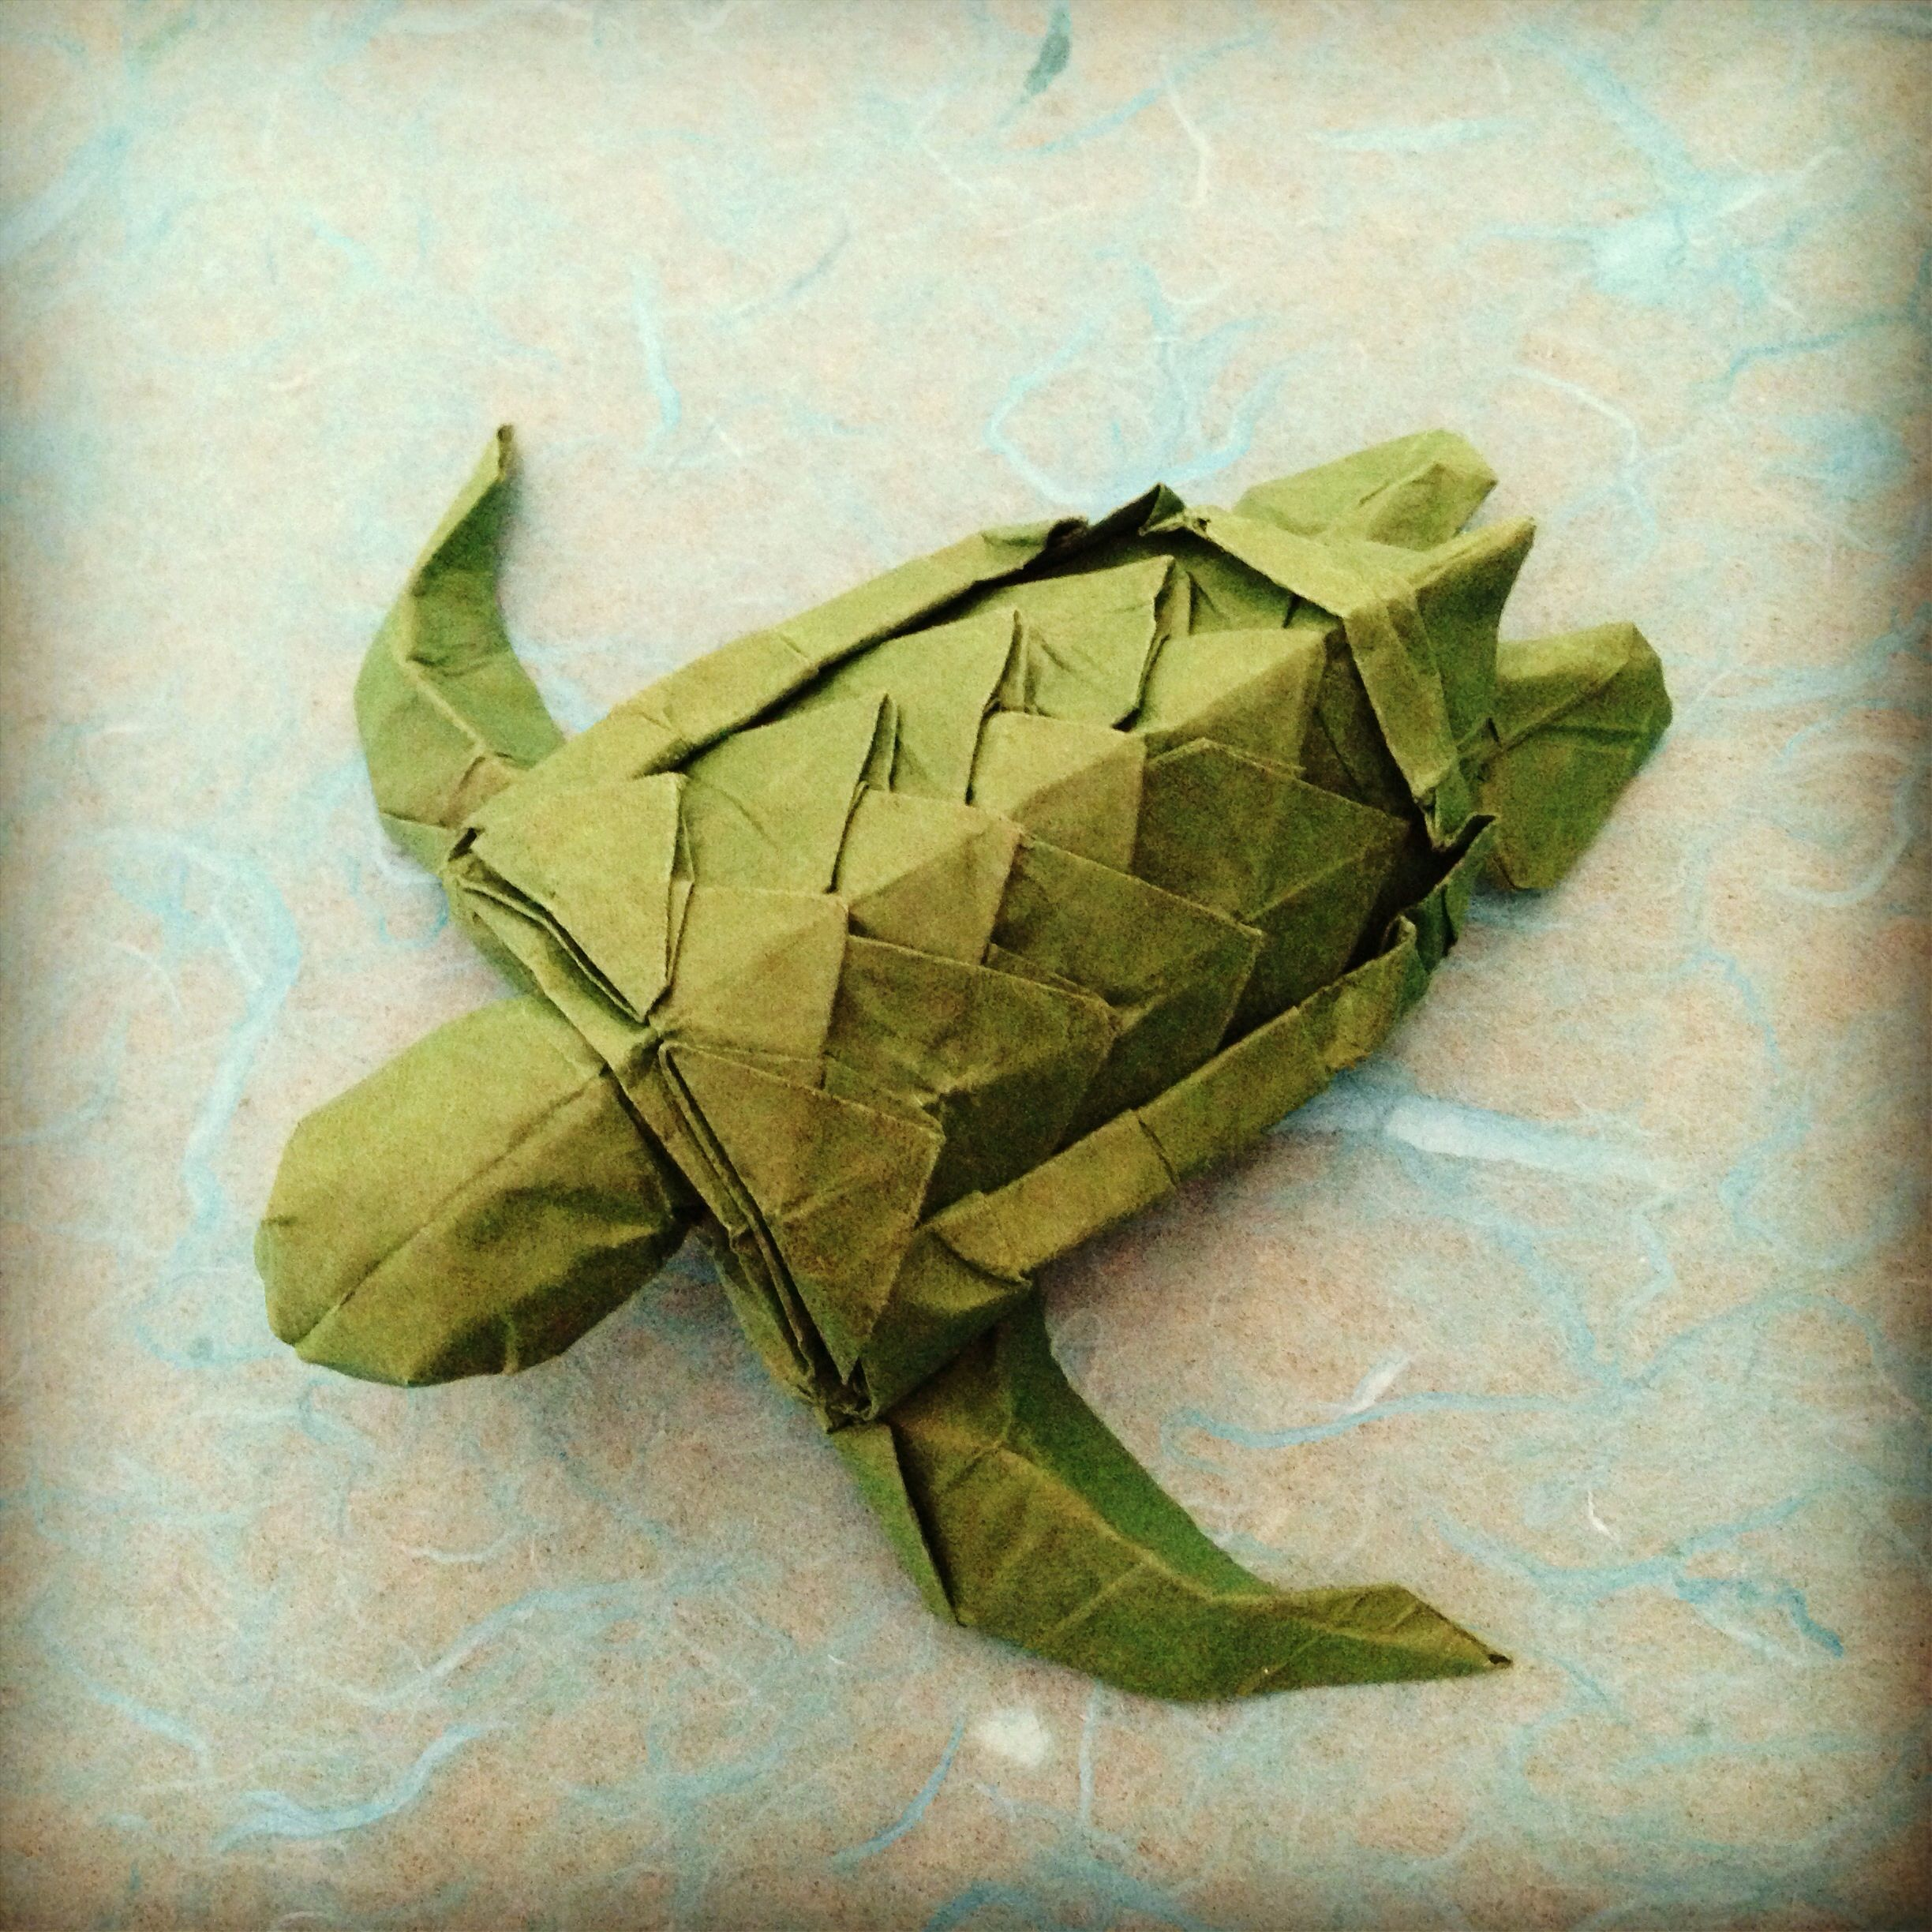 Origami sea turtle designed and folded by me origami mobile origami sea turtle designed and folded by me jeuxipadfo Image collections